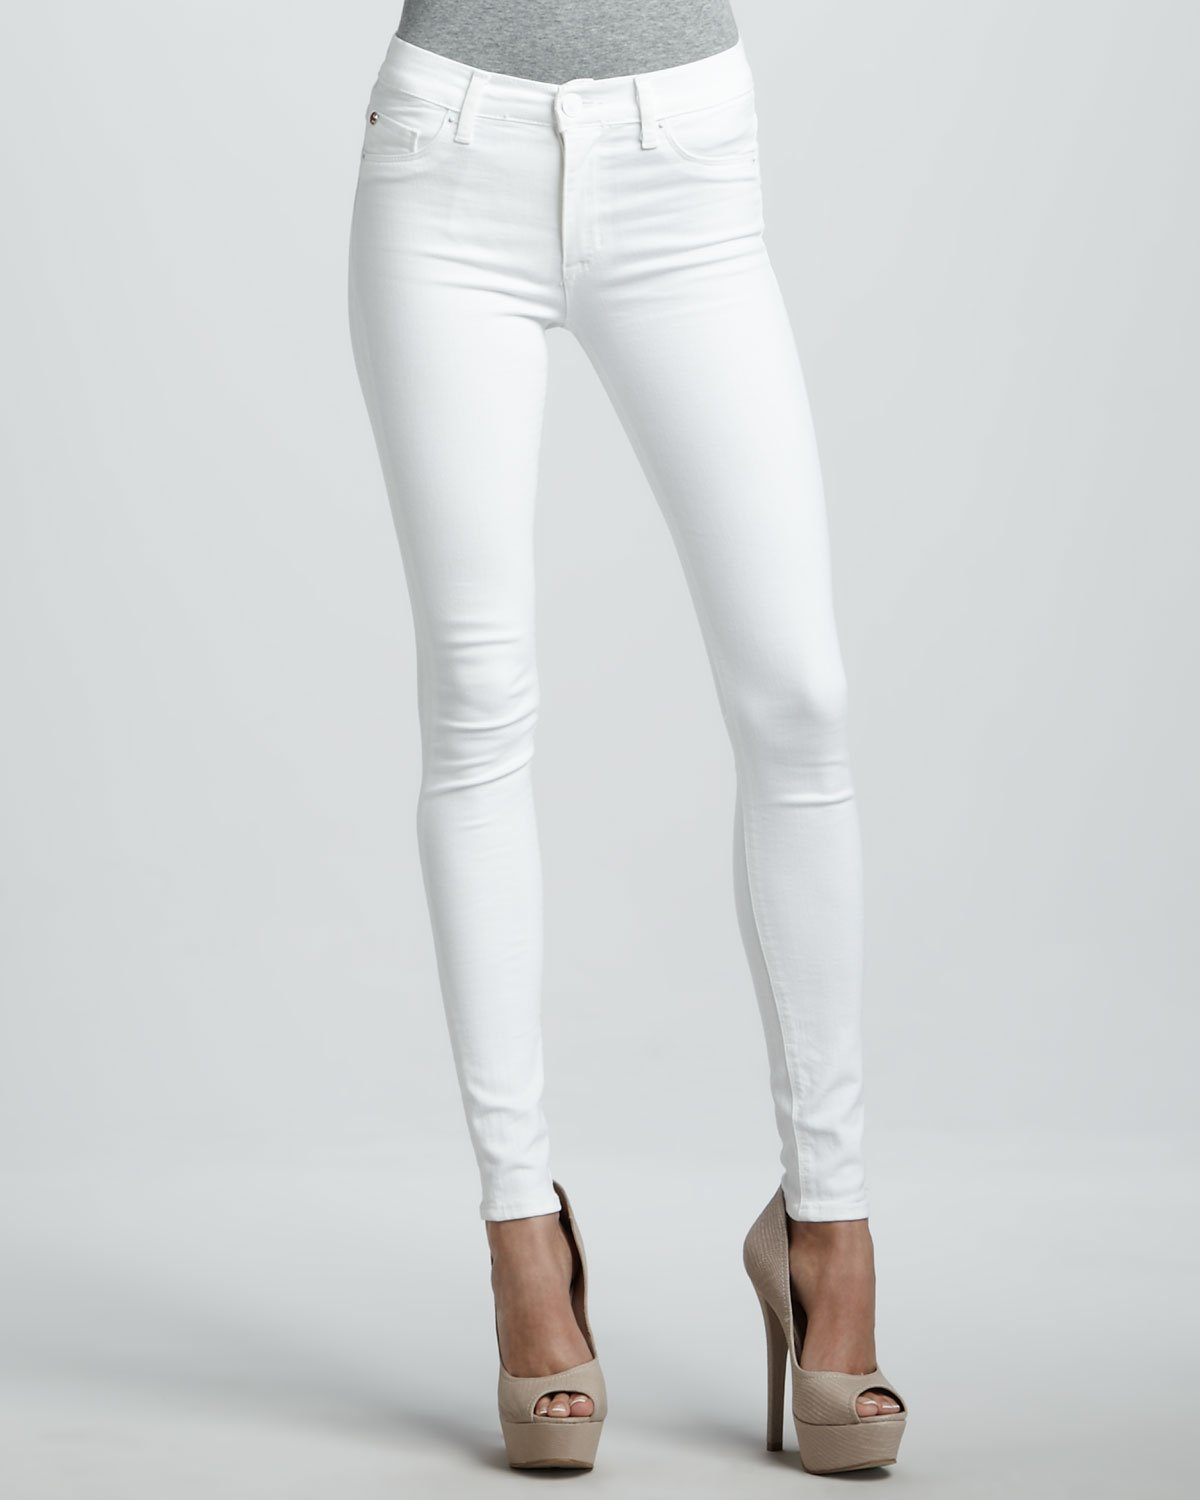 Juniors White Skinny Jeans | Bbg Clothing